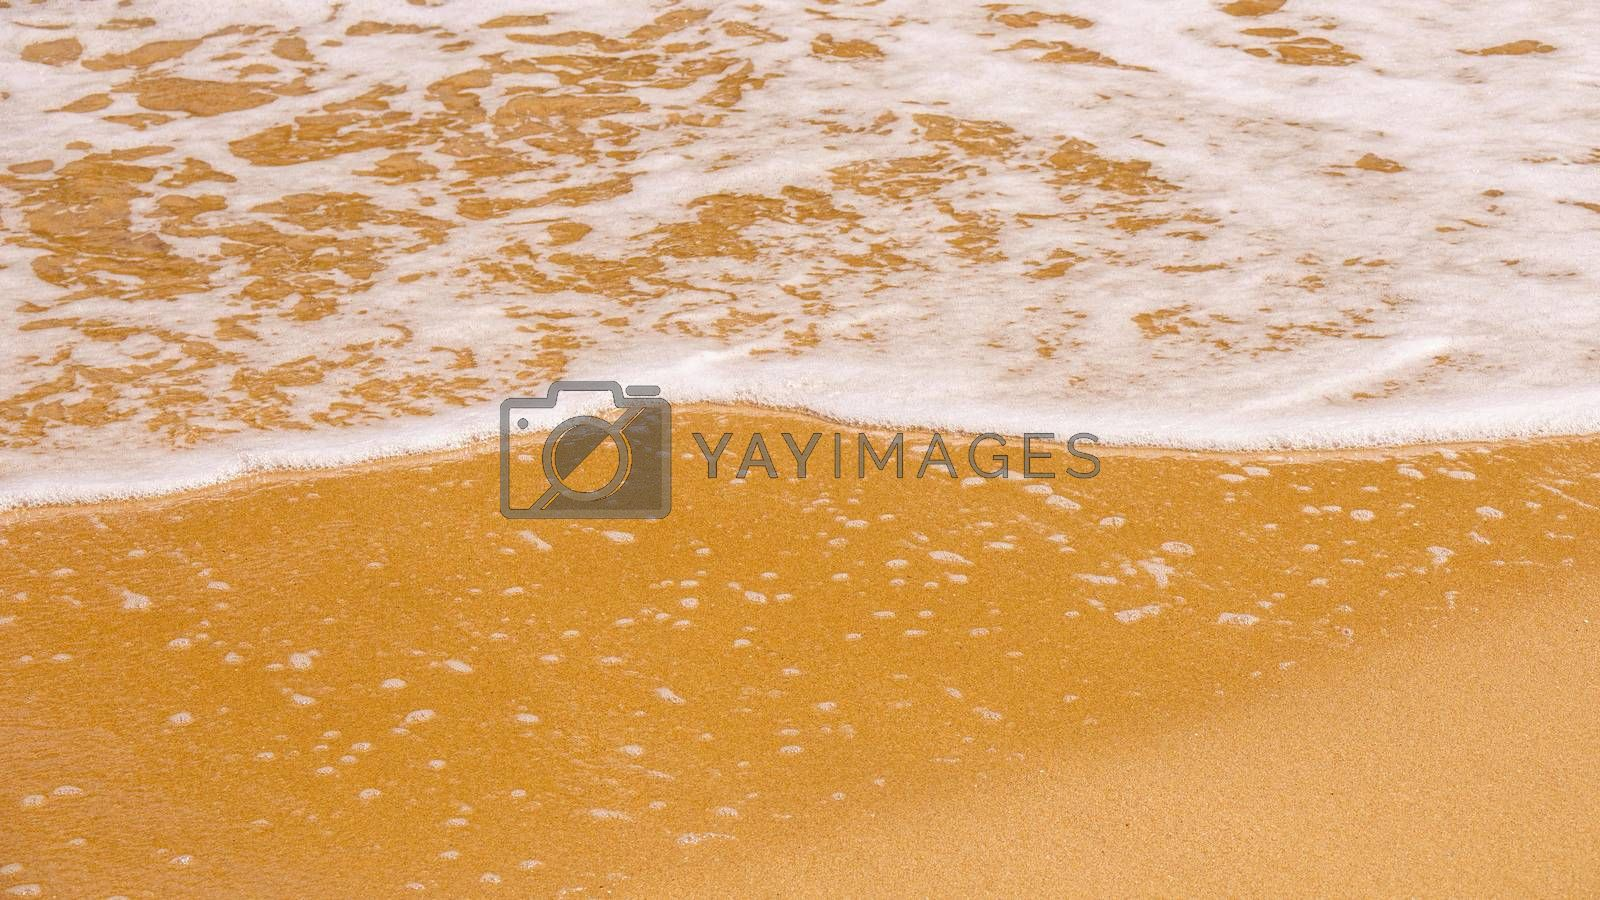 An image of a sandy beach shore line texture background